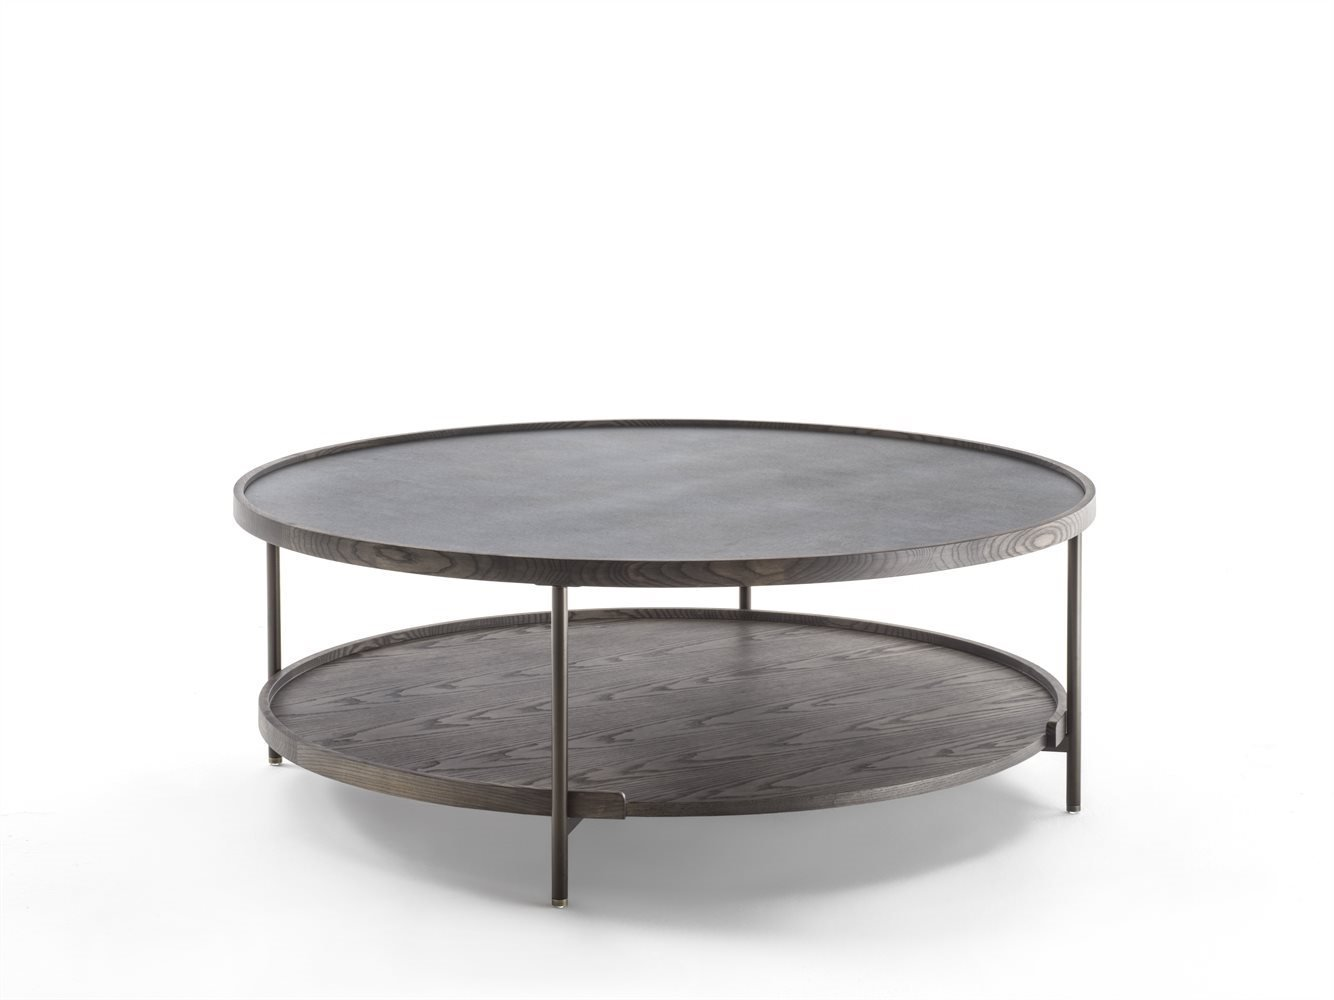 Koster 120 Coffee Table from Porada, designed by S. Tollgard